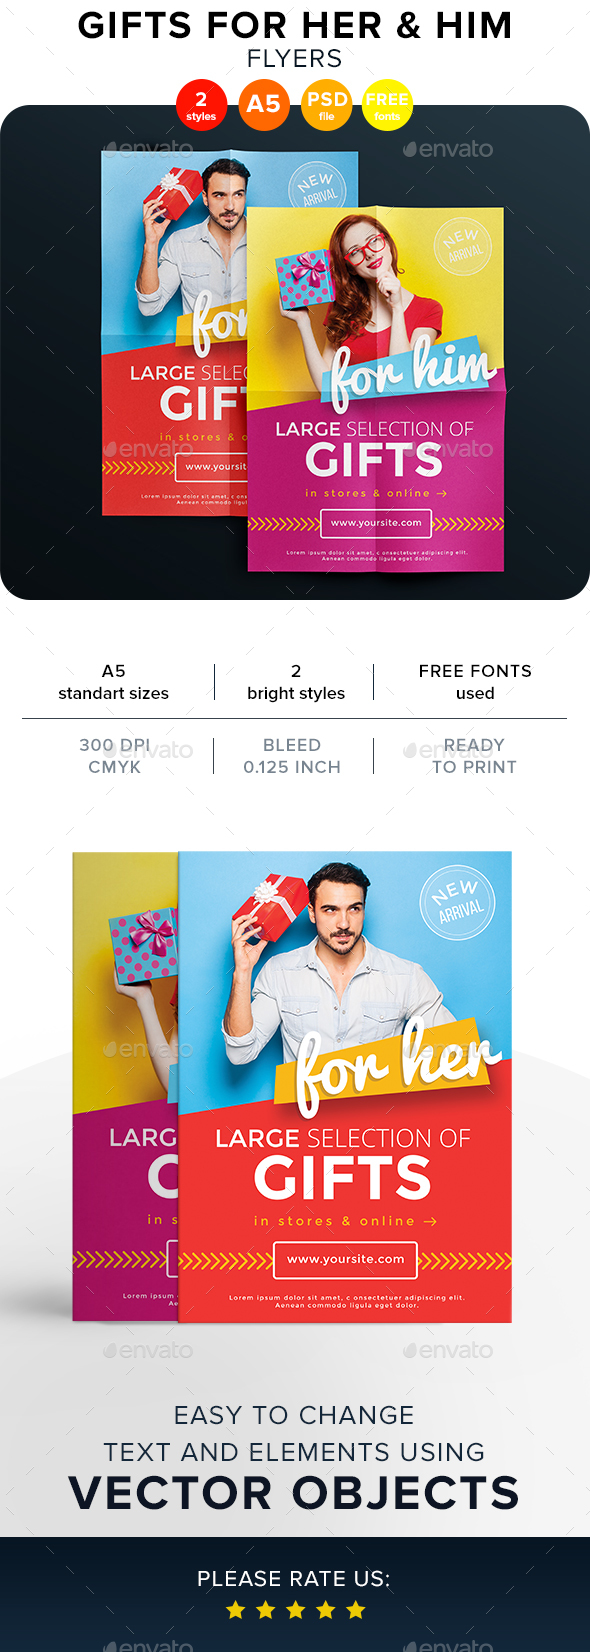 Gifts For Her & Him Flyers - Flyers Print Templates